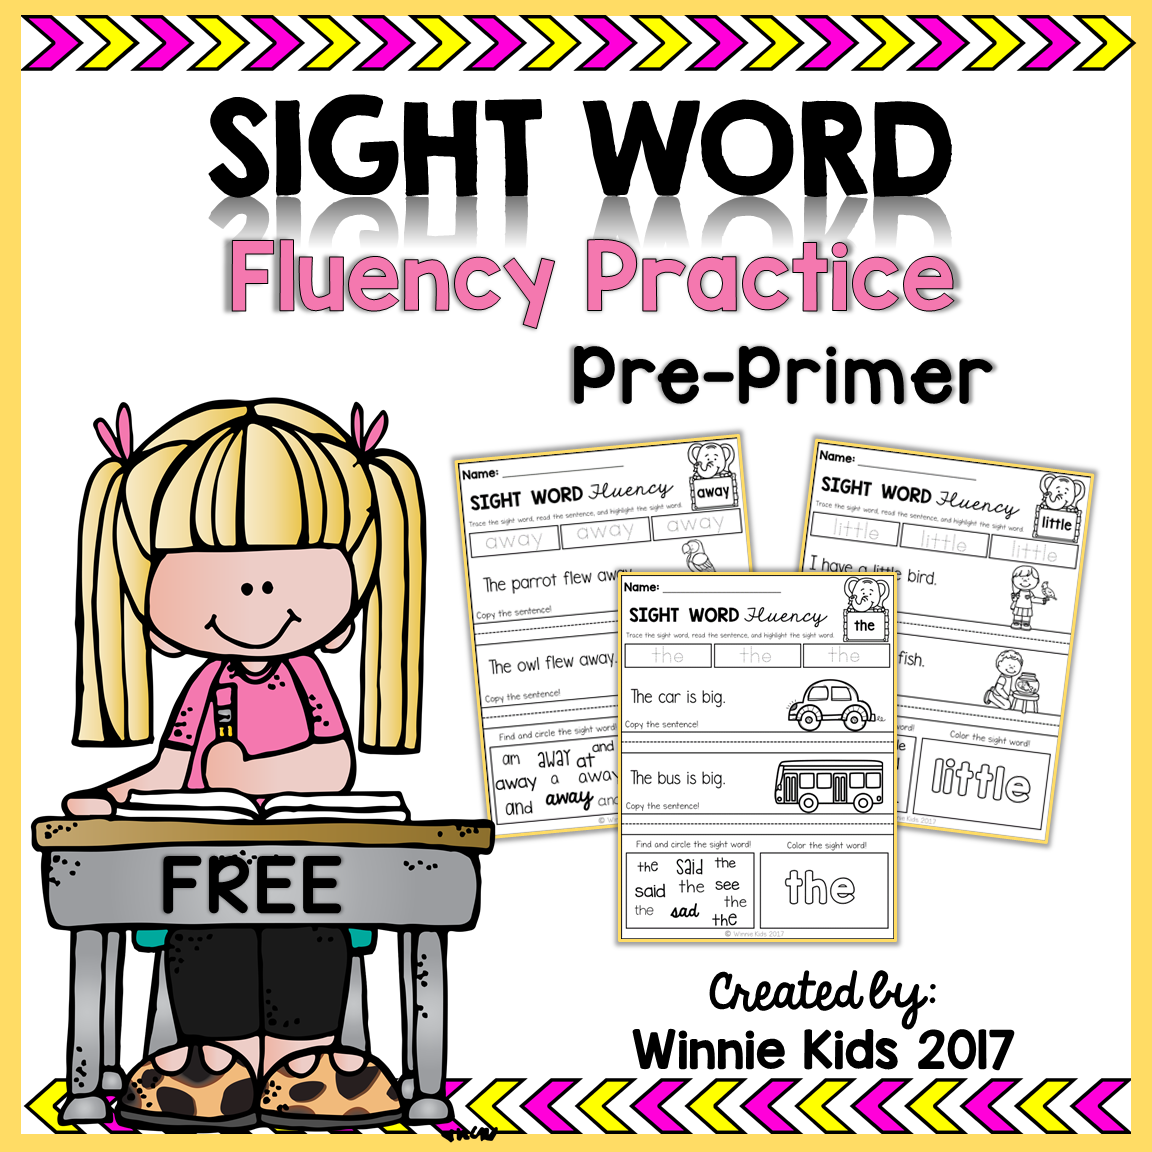 Free Sight Word Fluency Practice